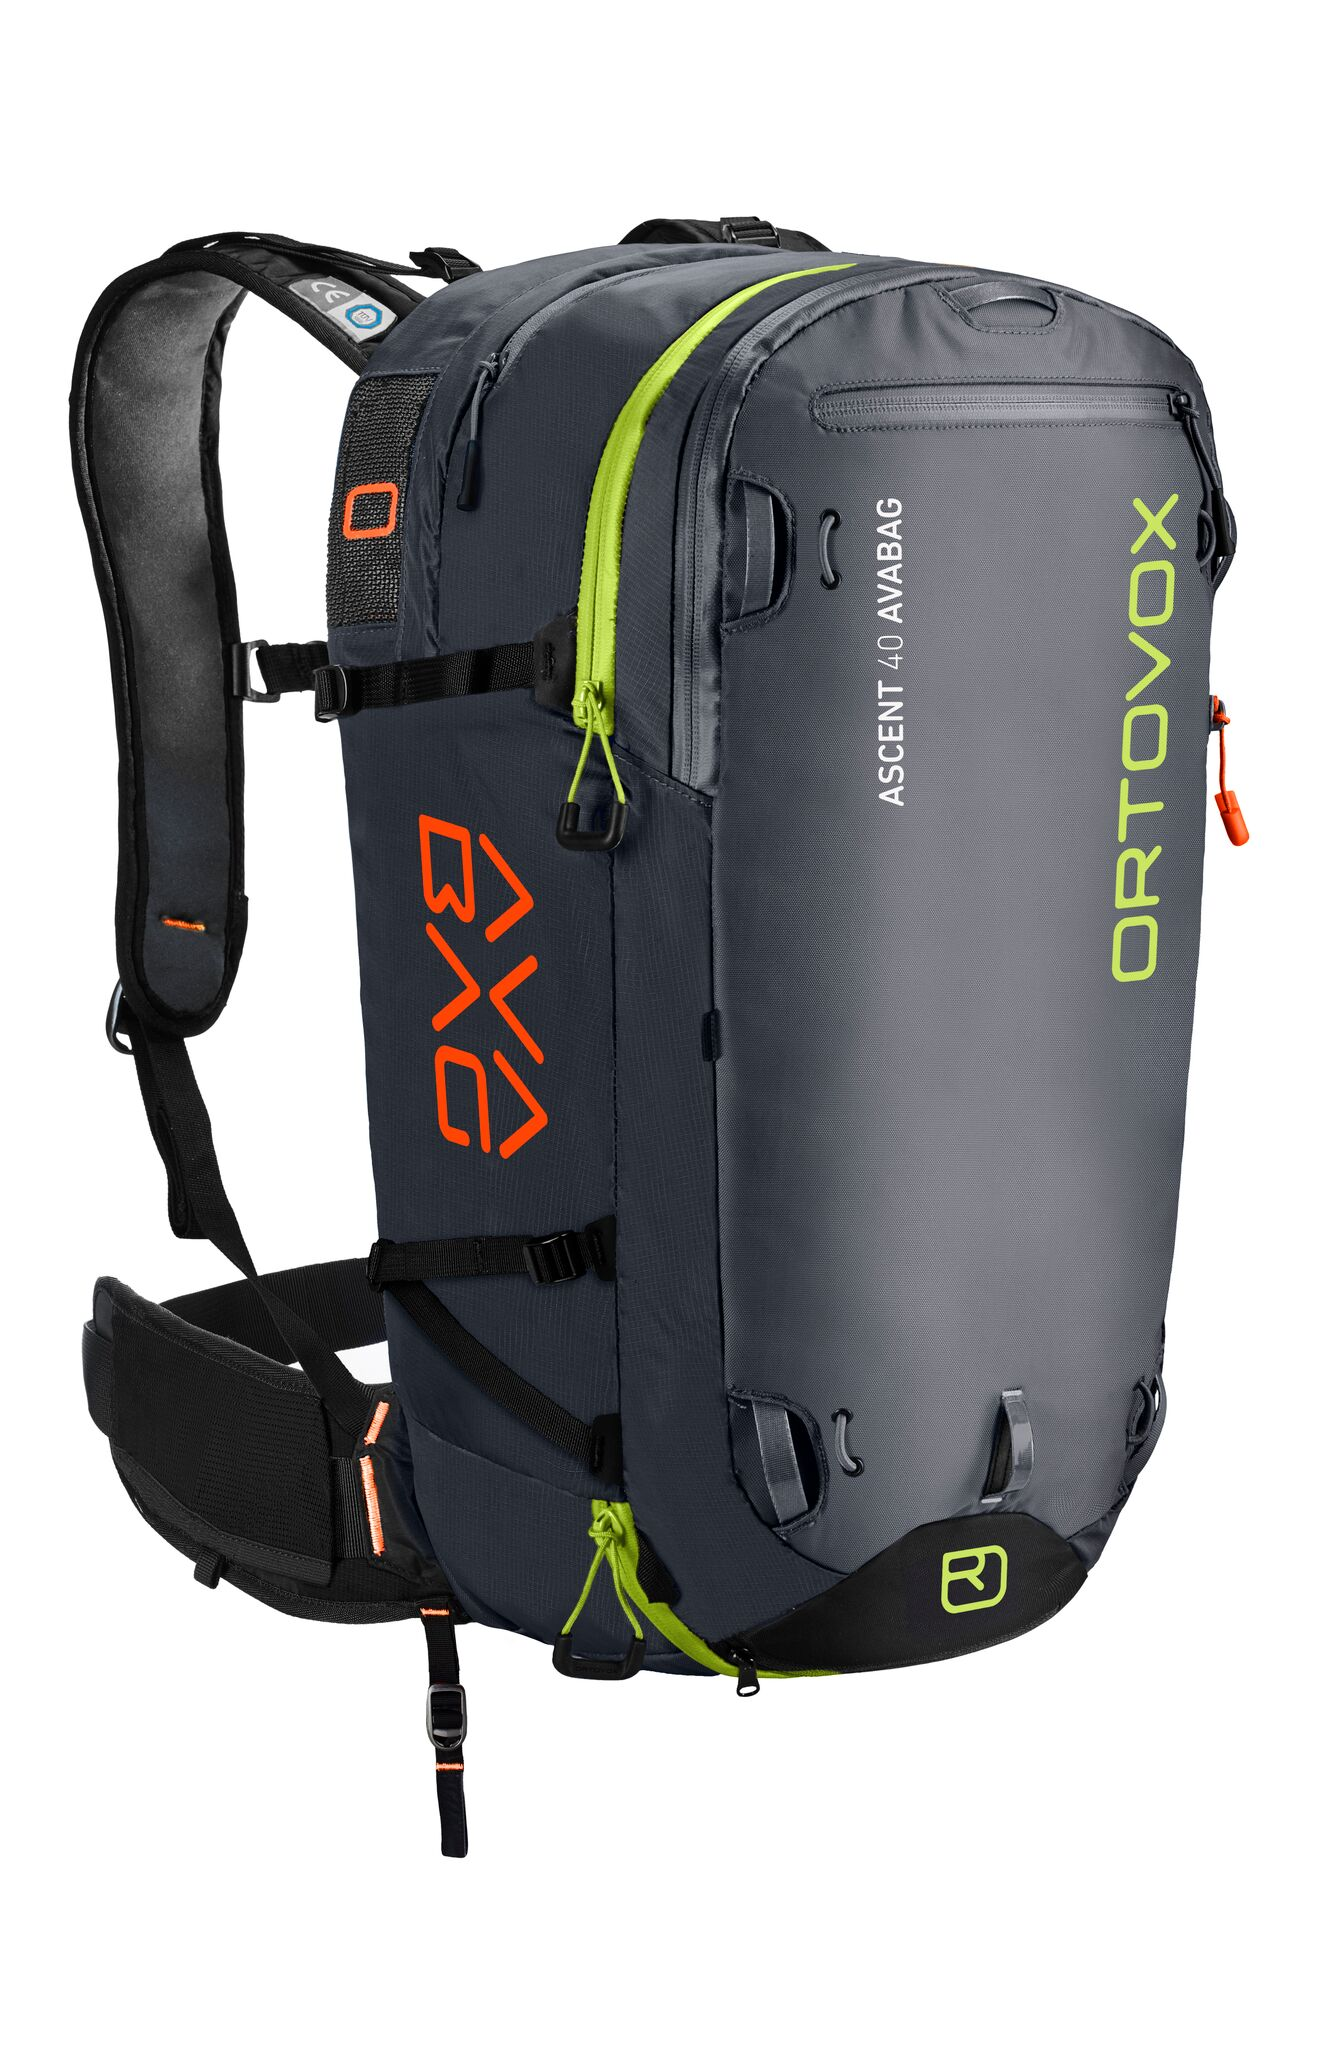 Front View - Non Inflated - Black Anthracite - Ortovox Ascent 40 Avabag